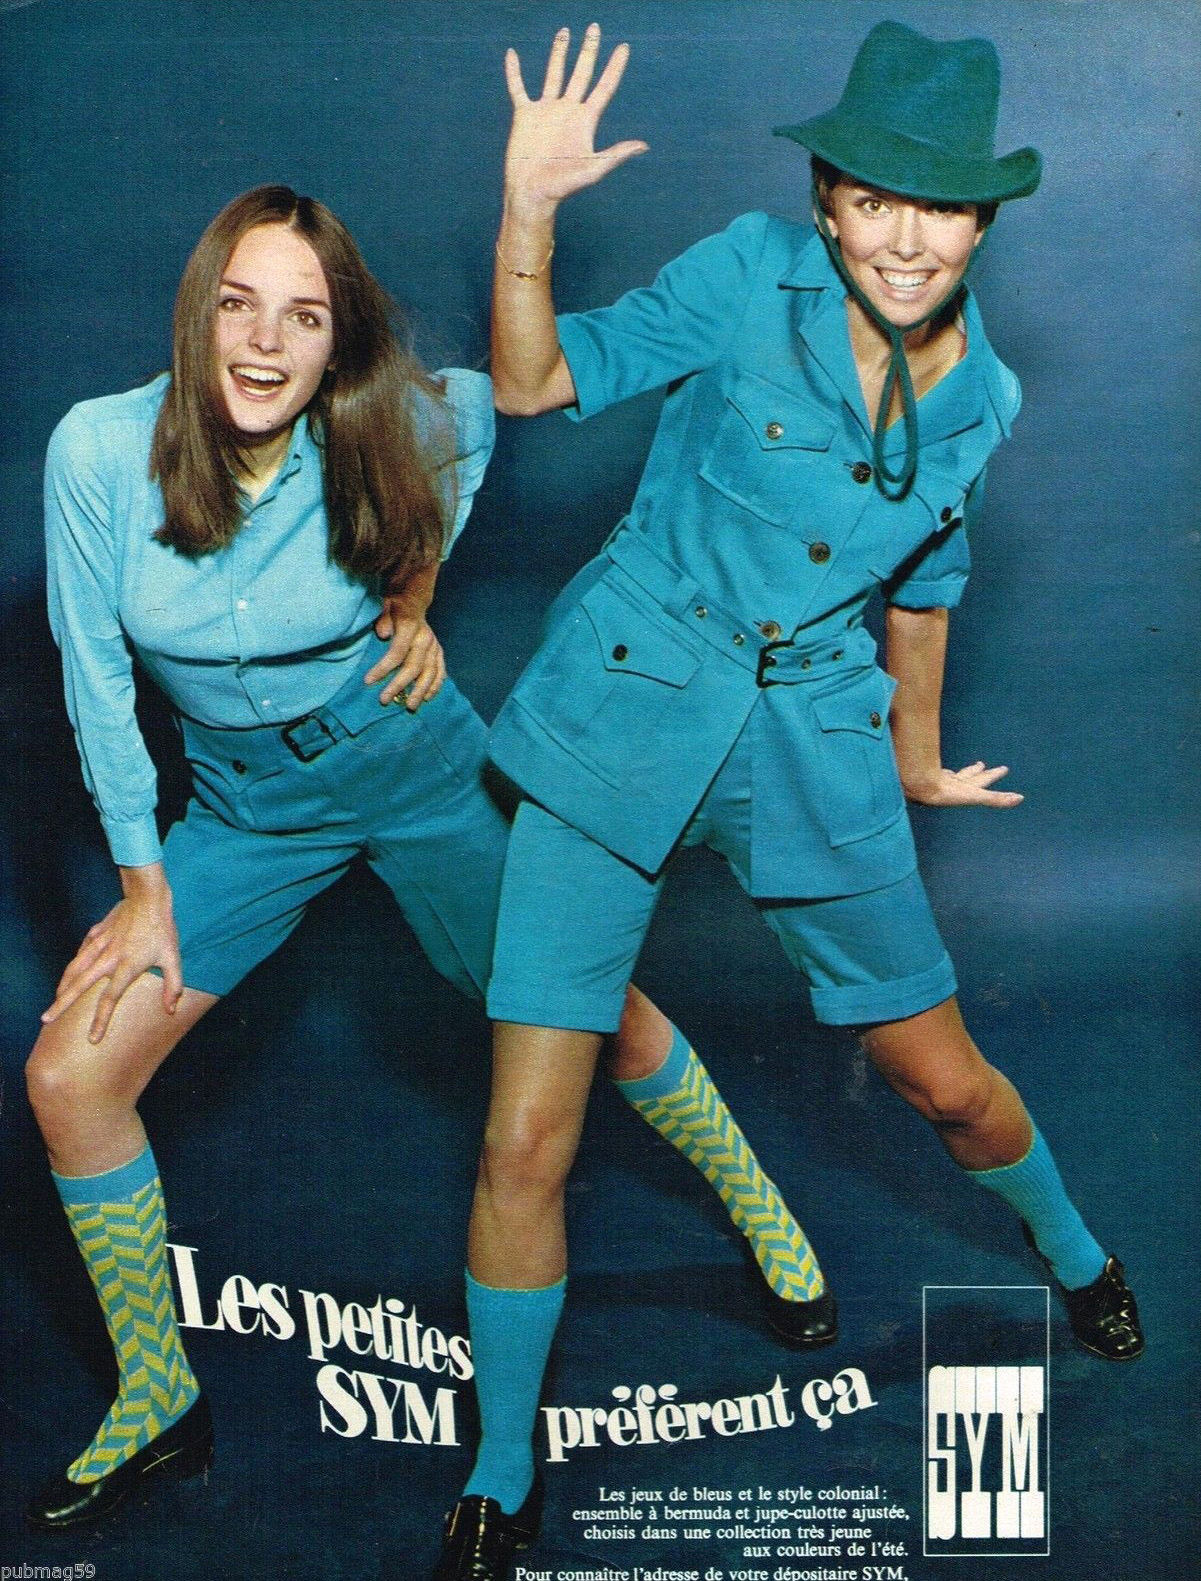 Publicité Advertising 1968 Pret à porter les vetements Sym